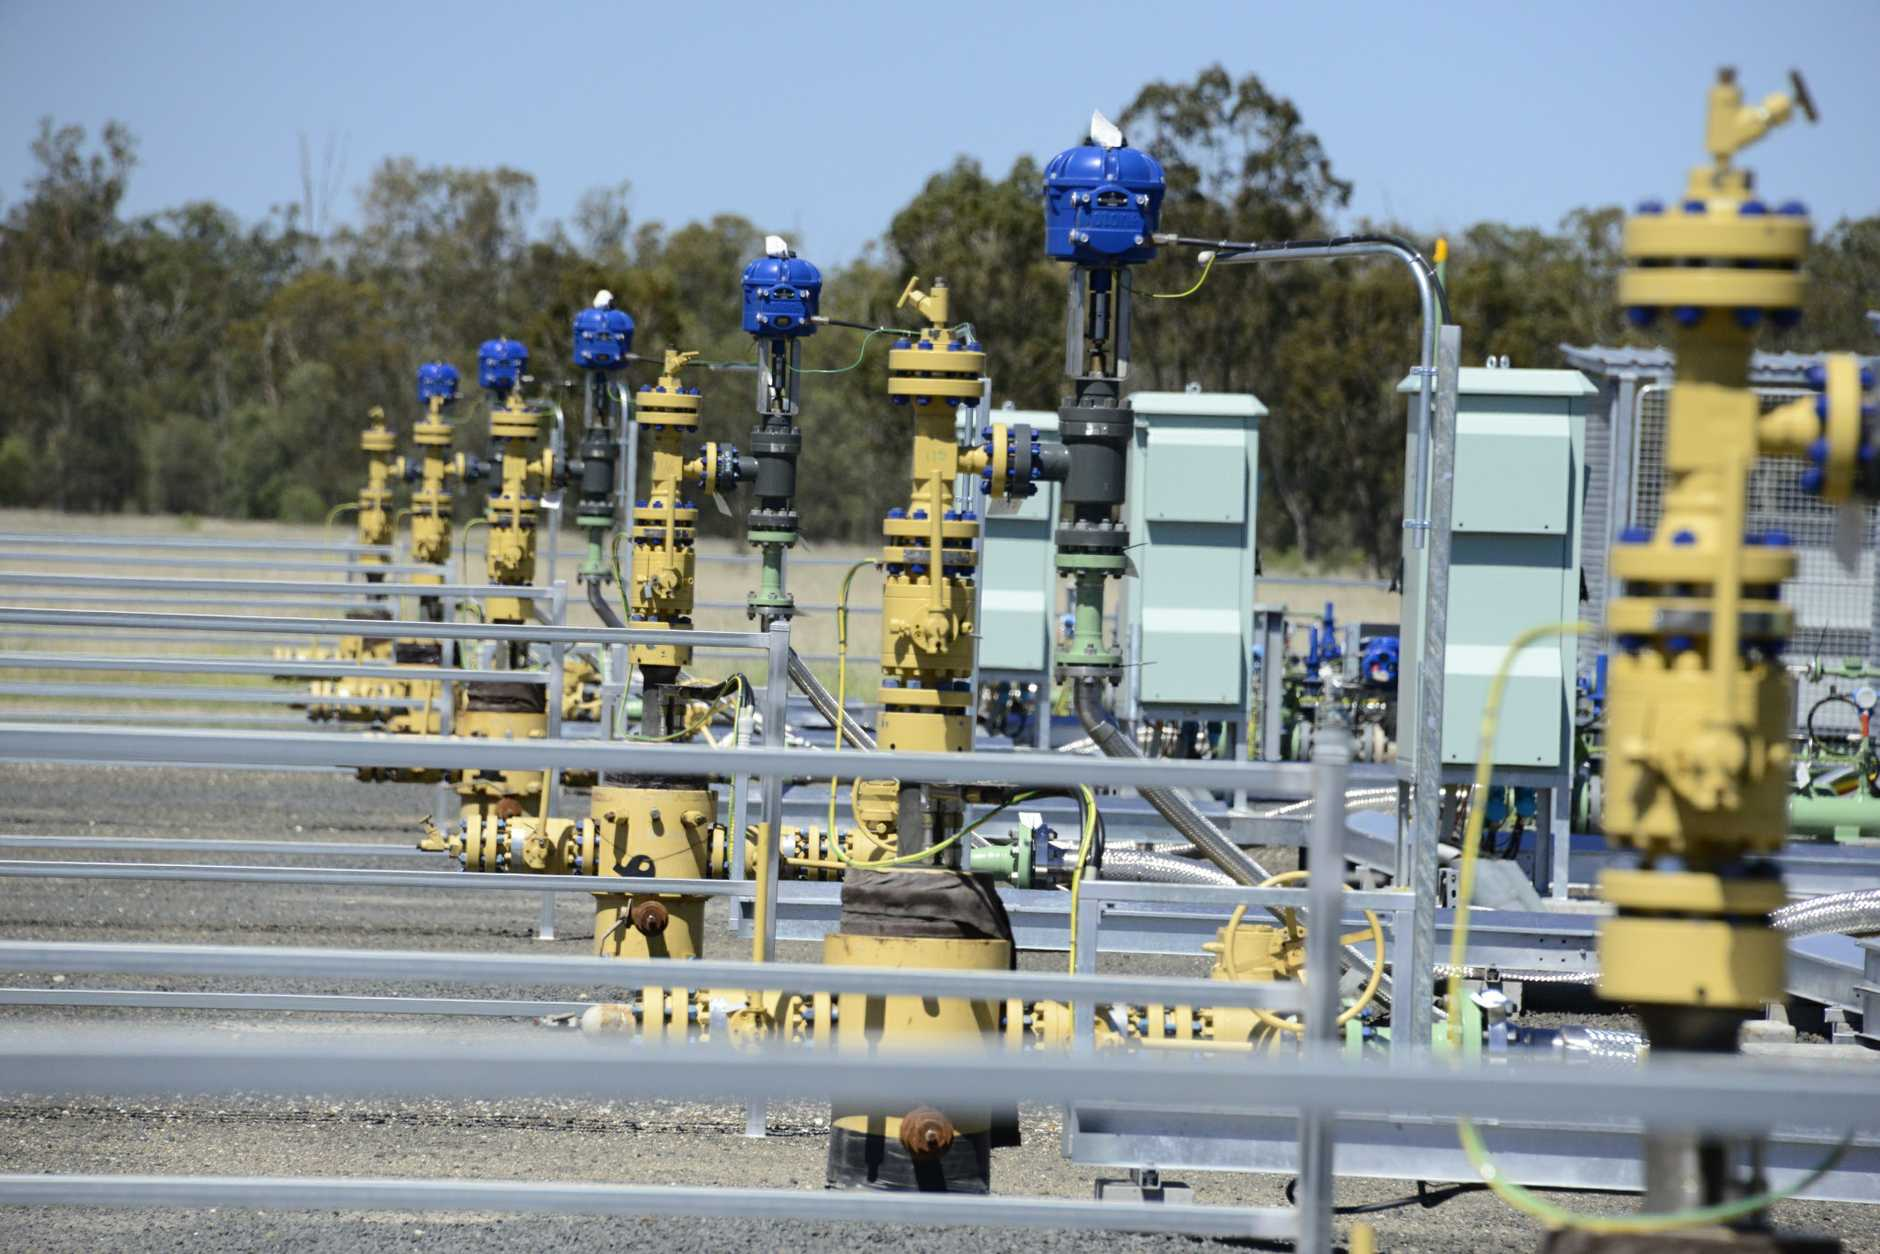 The Queensland Government has approved a $10b gas project spanning the Toowoomba and Western Downs regions.